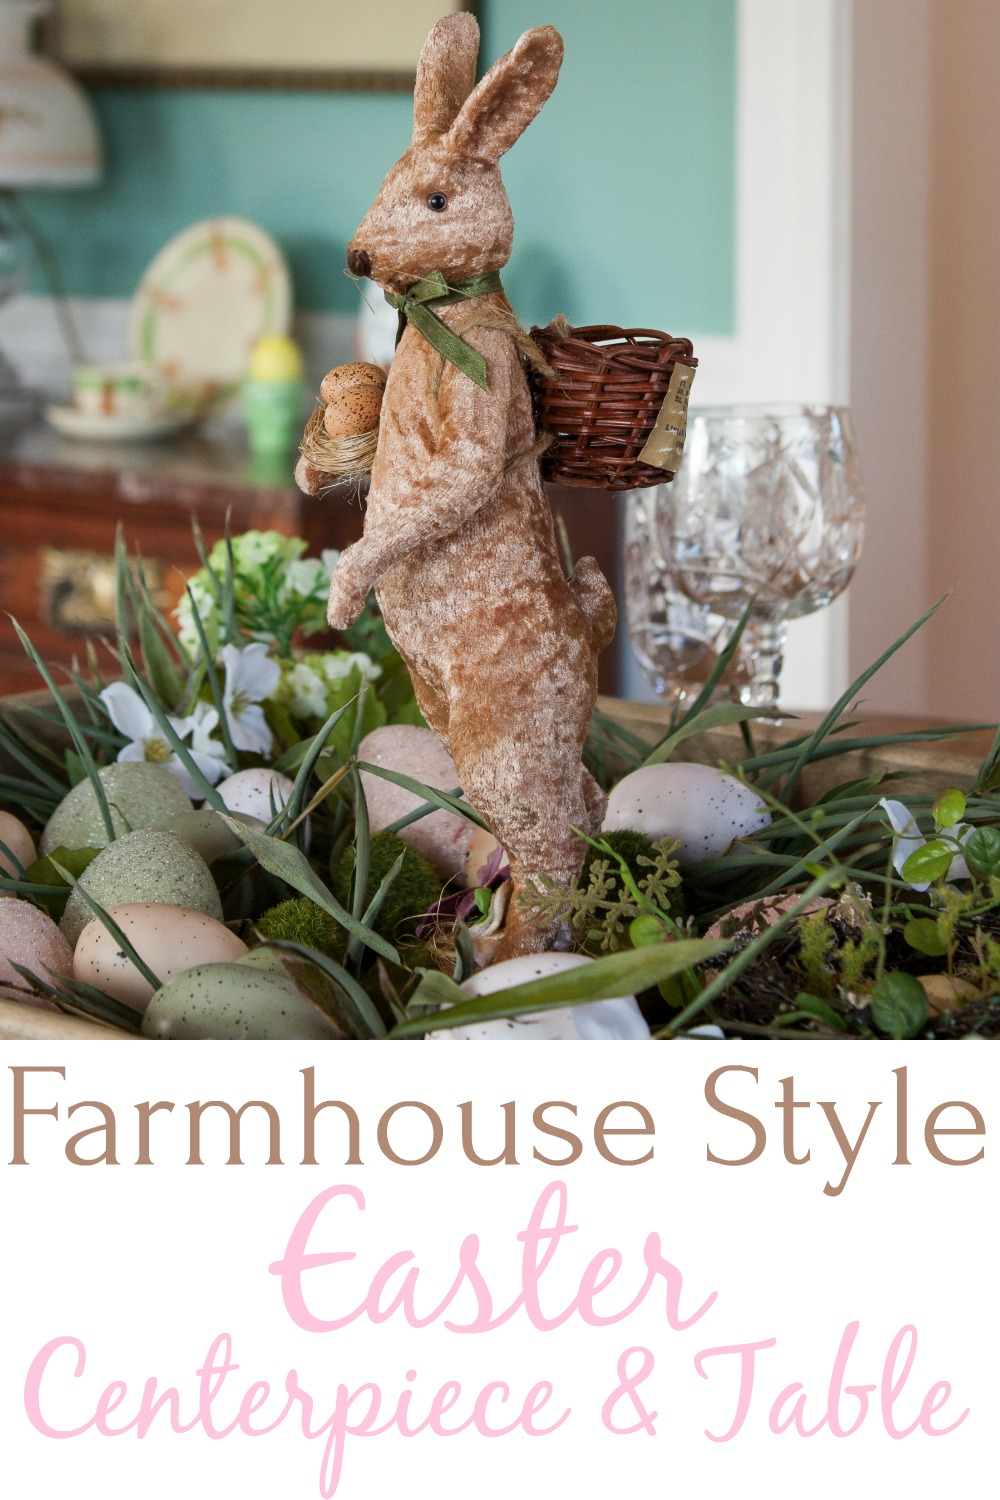 Farmhouse Style Easter Centerpiece and Table - Learn how to create a farmhouse style Easter centerpiece for your Easter table and get ideas for setting the table for Easter.  #easter #eastercenterpiece #eastertablescape #farmhouse #farmhousecenterpiece #farmhousetable  via @spaula